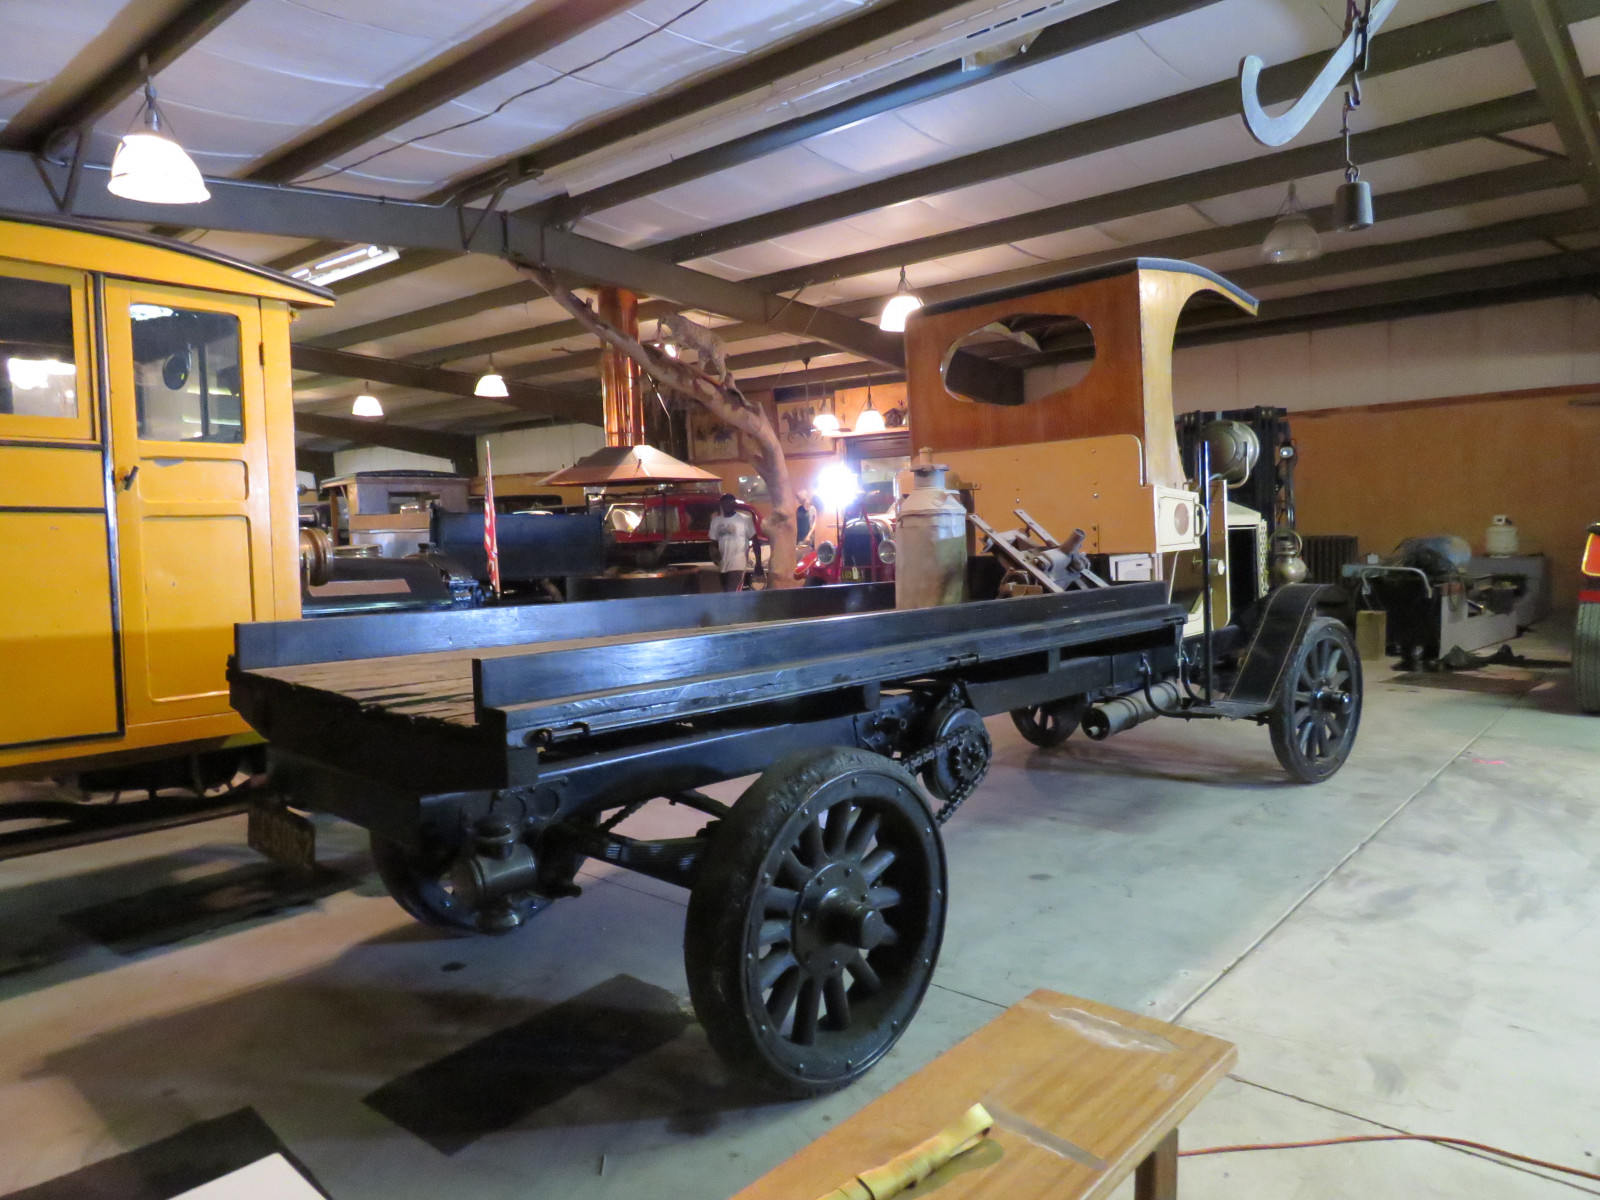 1914 REO Speedwagon Model J 2 Ton Truck - Image 7